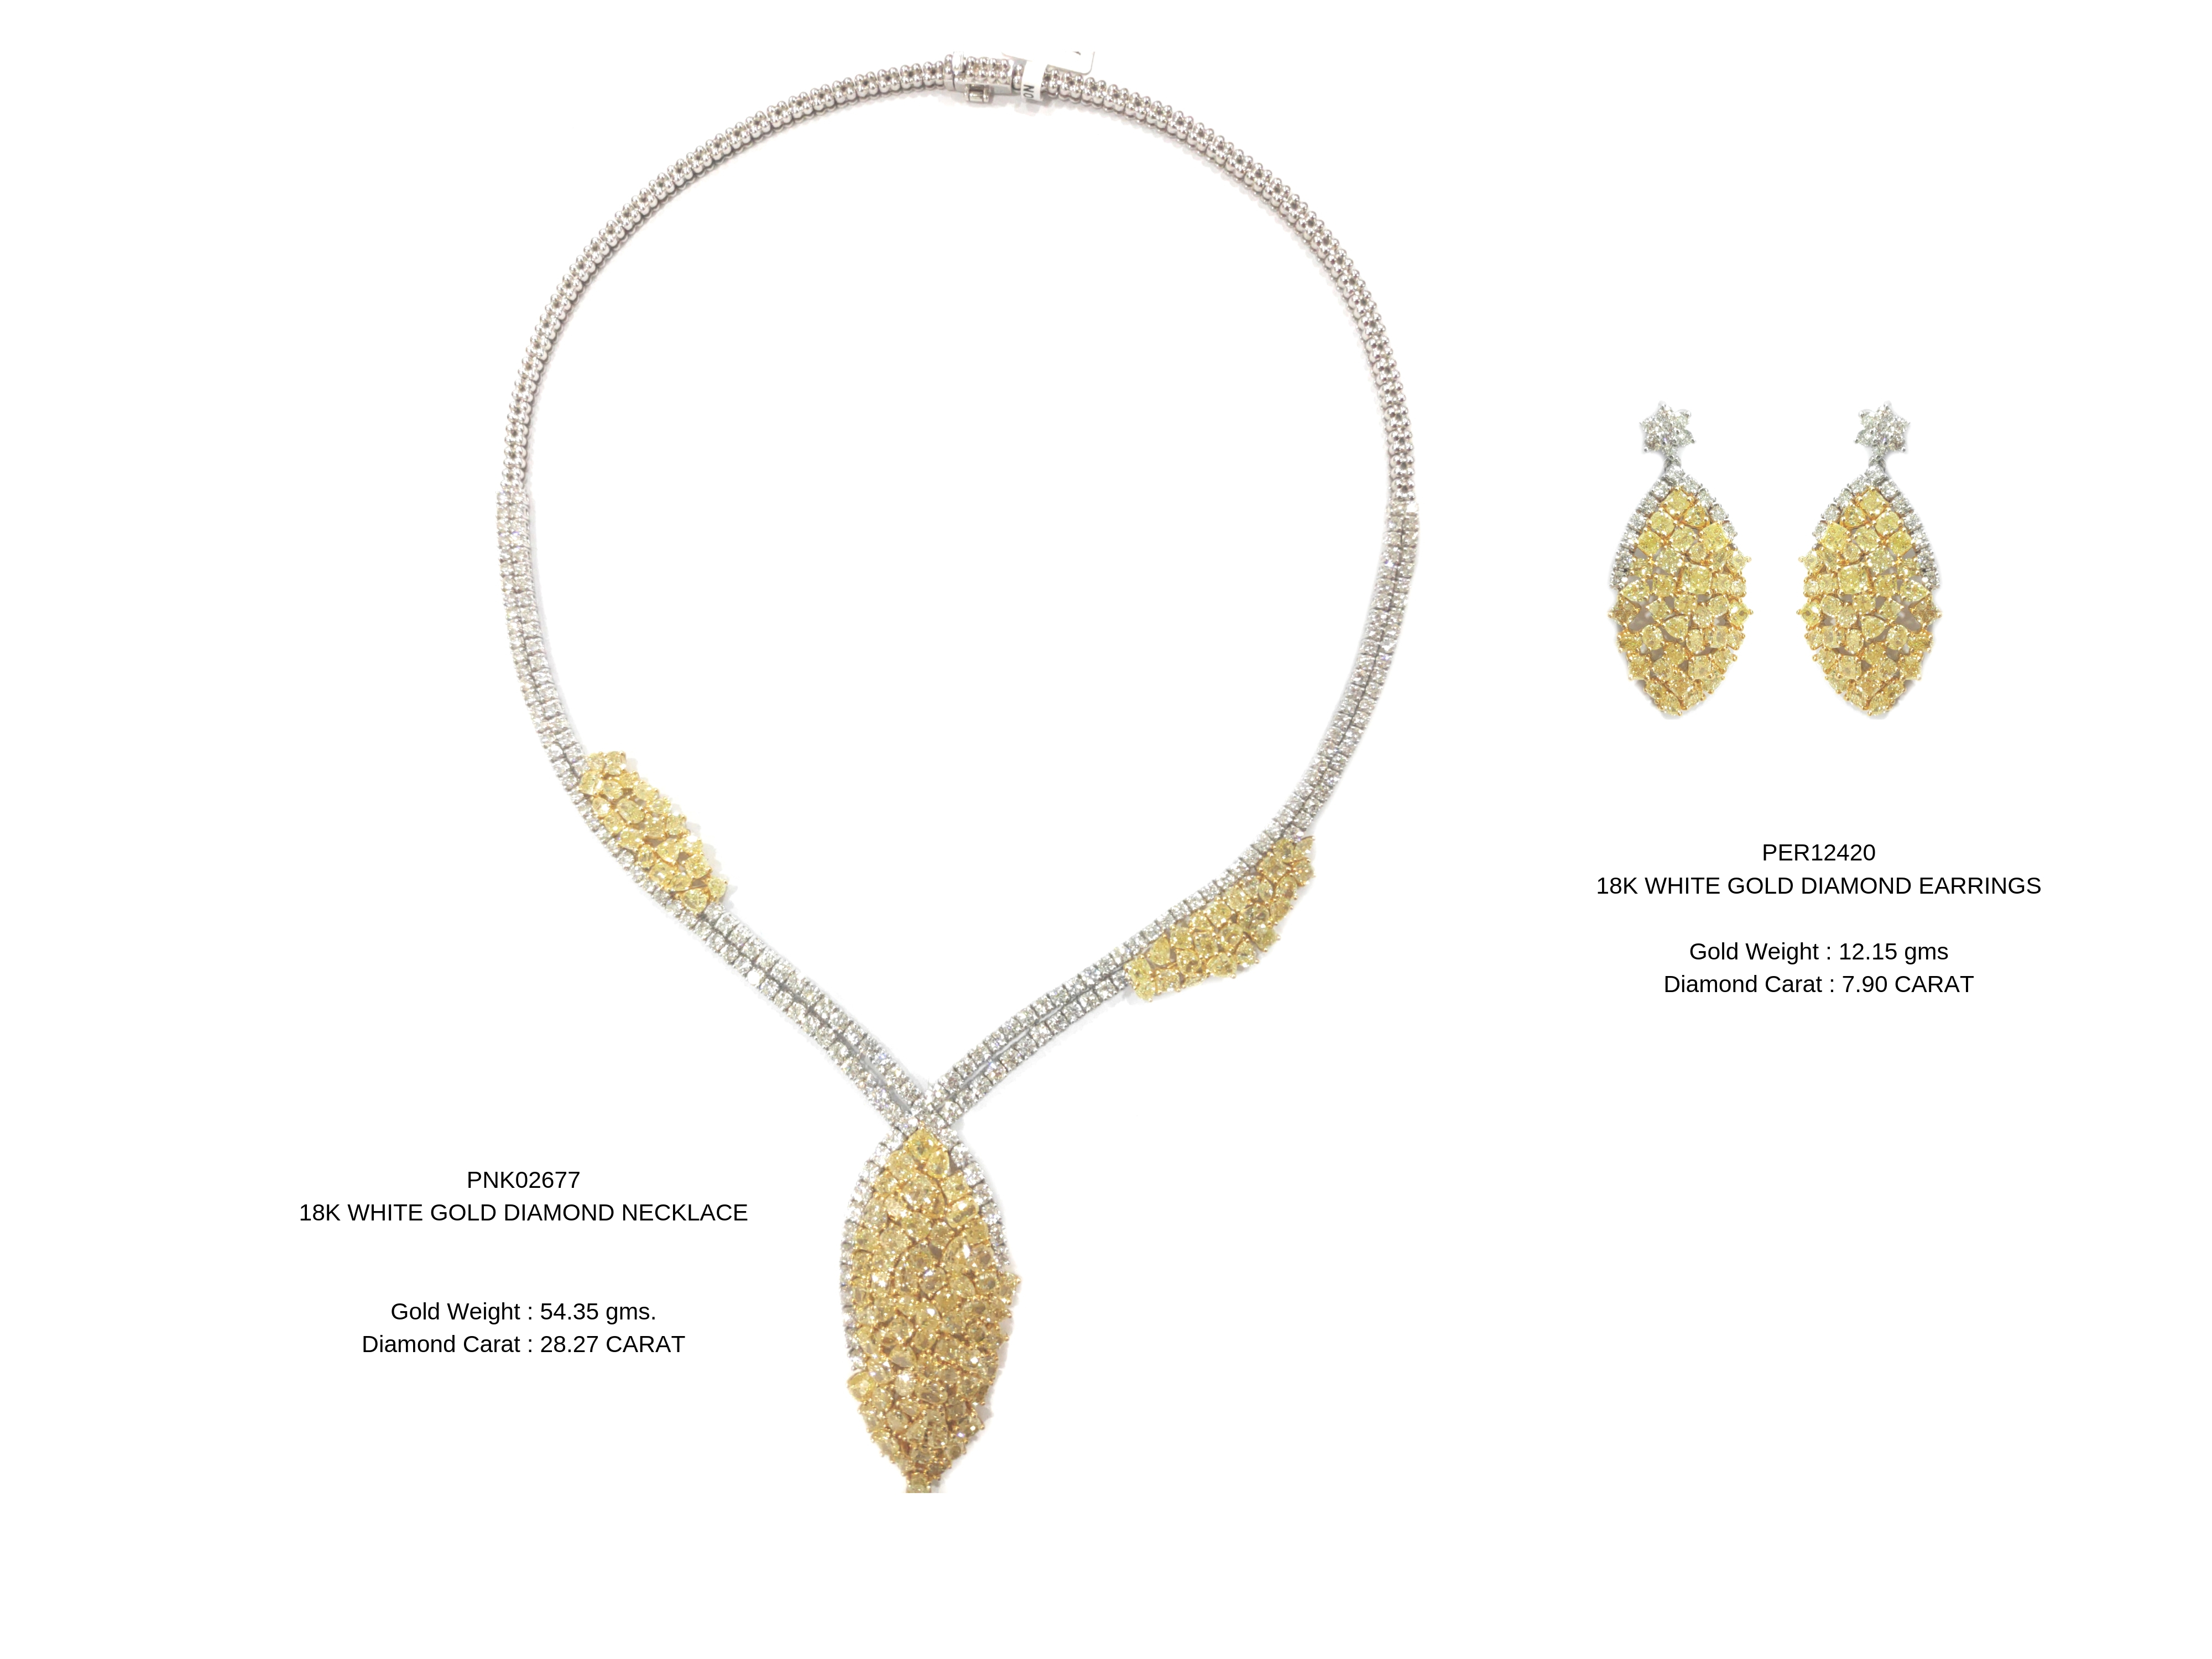 yellowdiamondnecklaceset